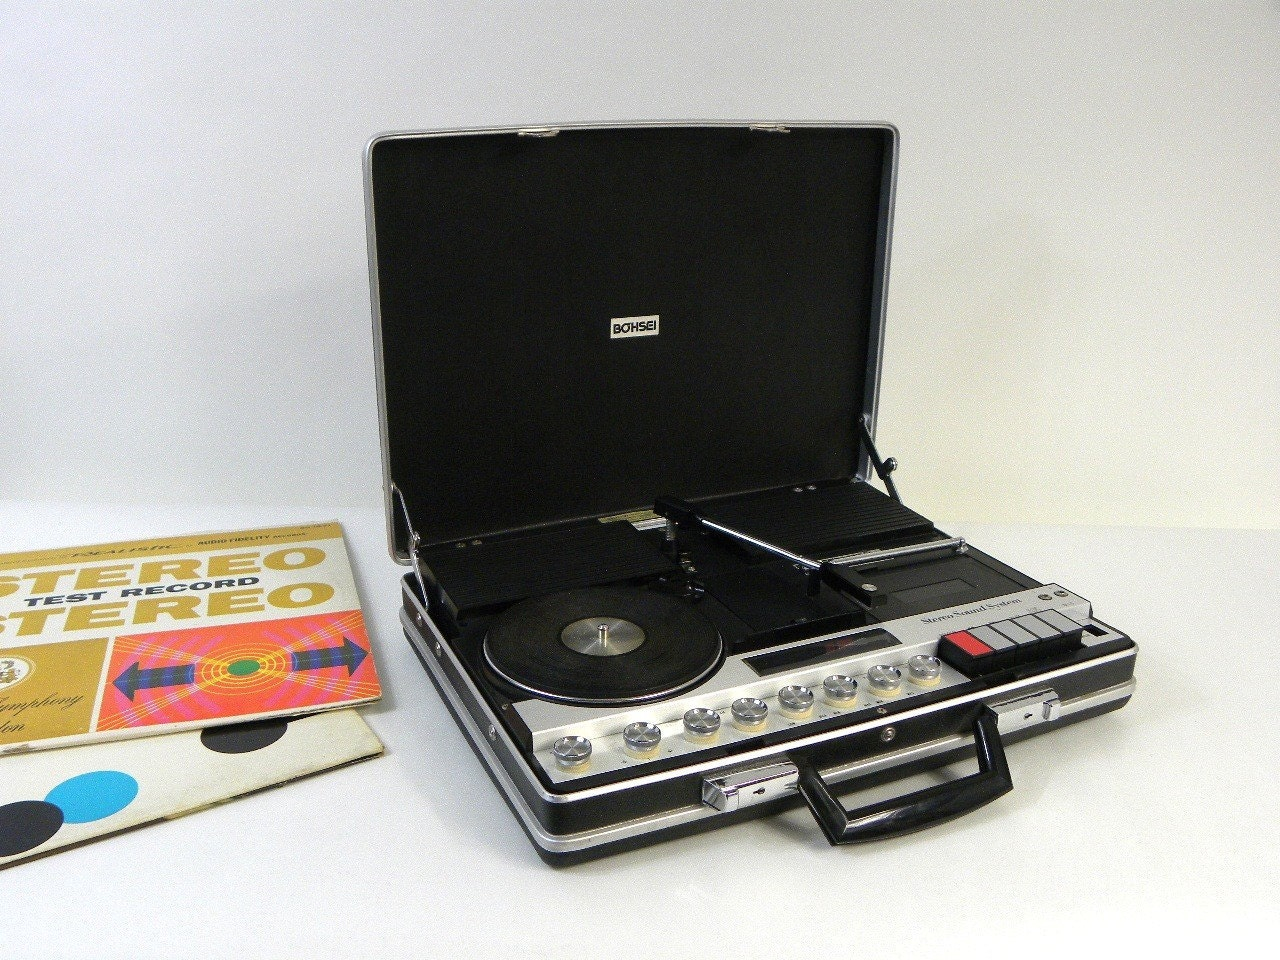 Briefcase Portable Record Player Stereo System By Bohsei